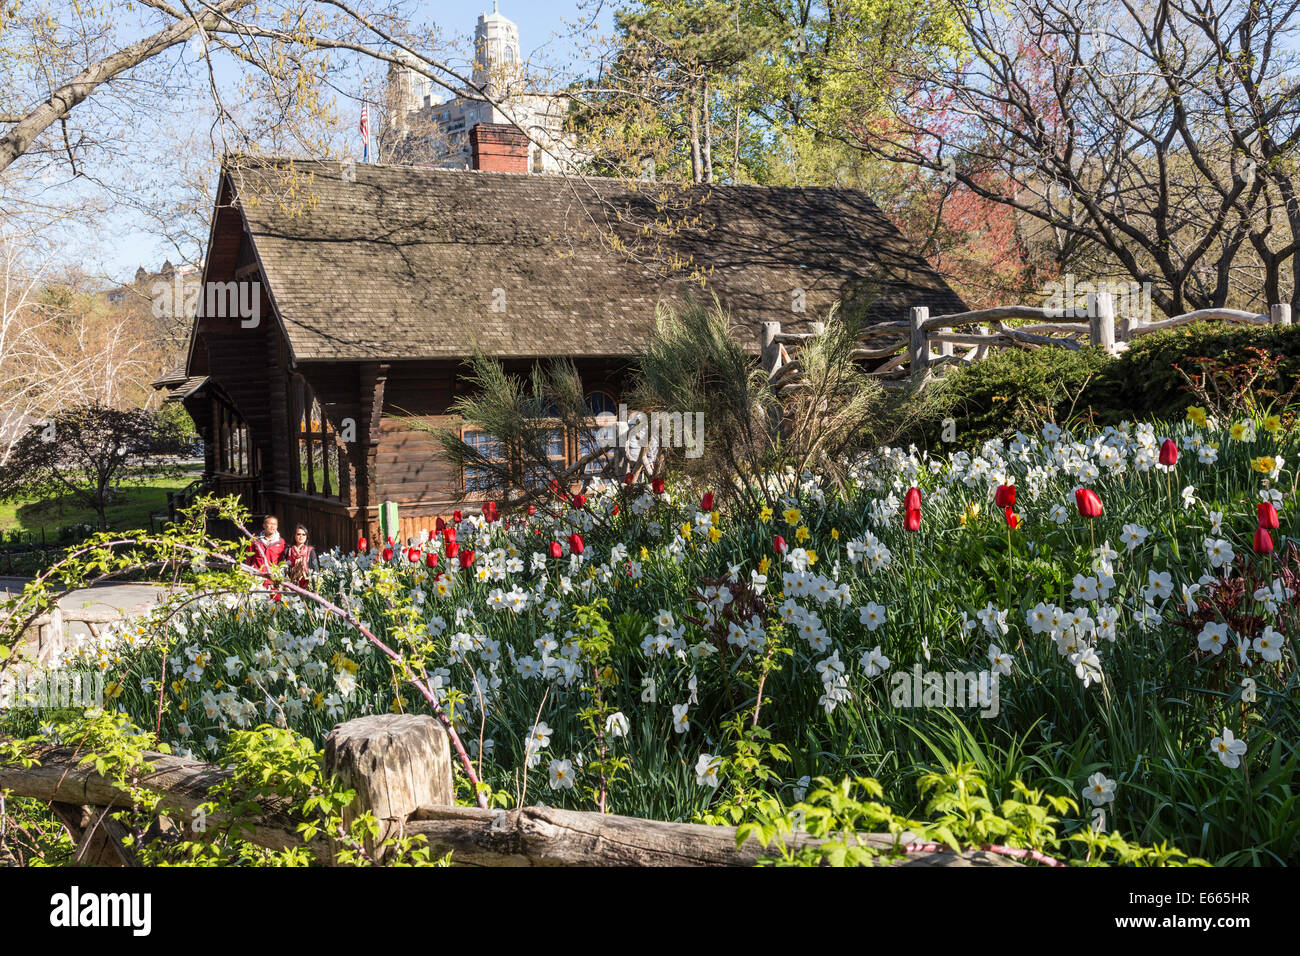 Shakespeare Garden And Swedish Cottage Marionette Theatre In Central Stock Photo Royalty Free